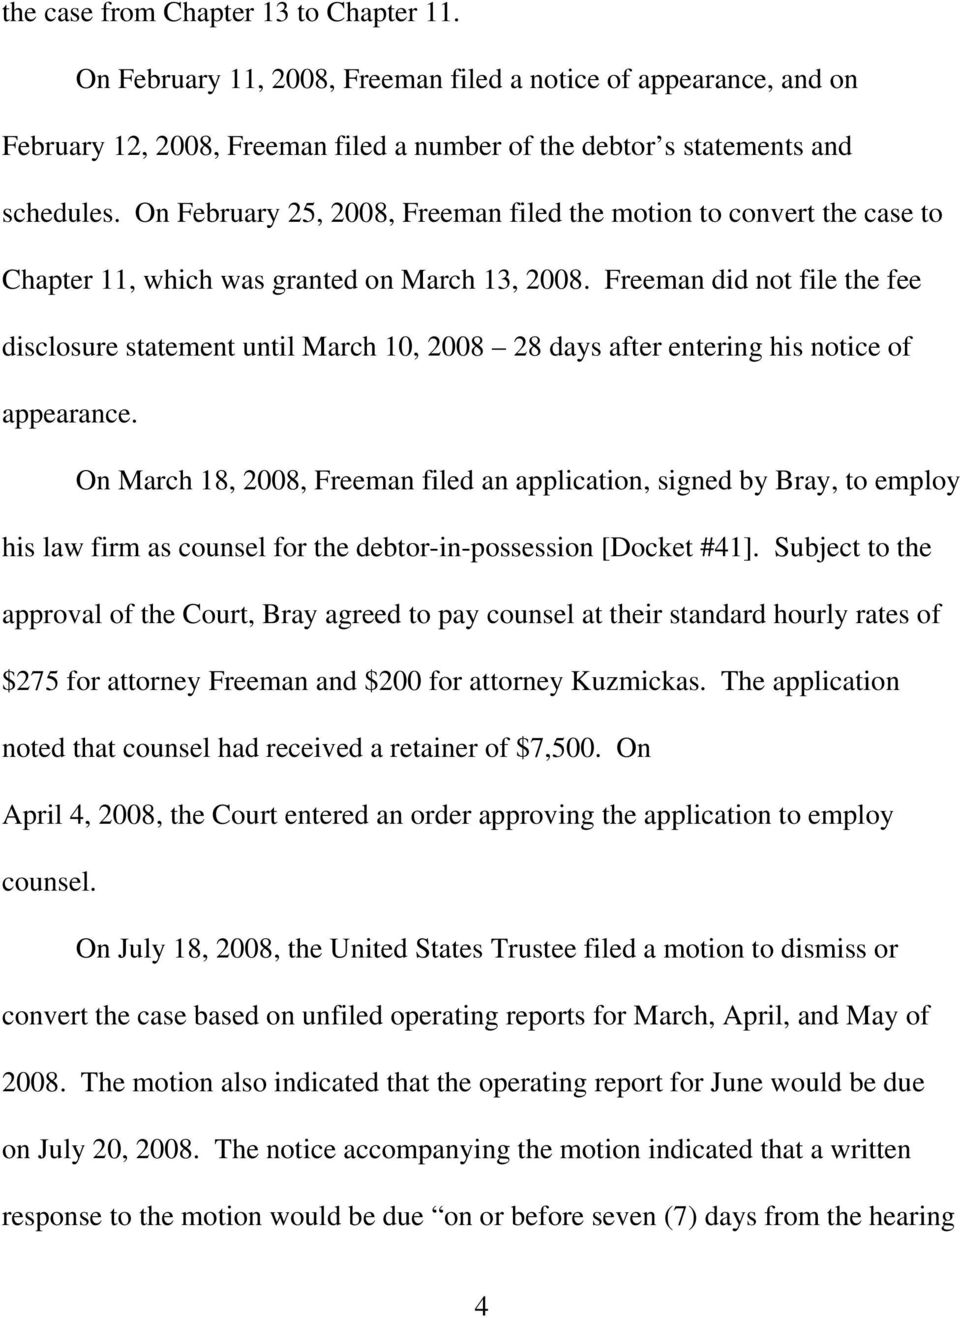 Freeman did not file the fee disclosure statement until March 10, 2008 28 days after entering his notice of appearance.